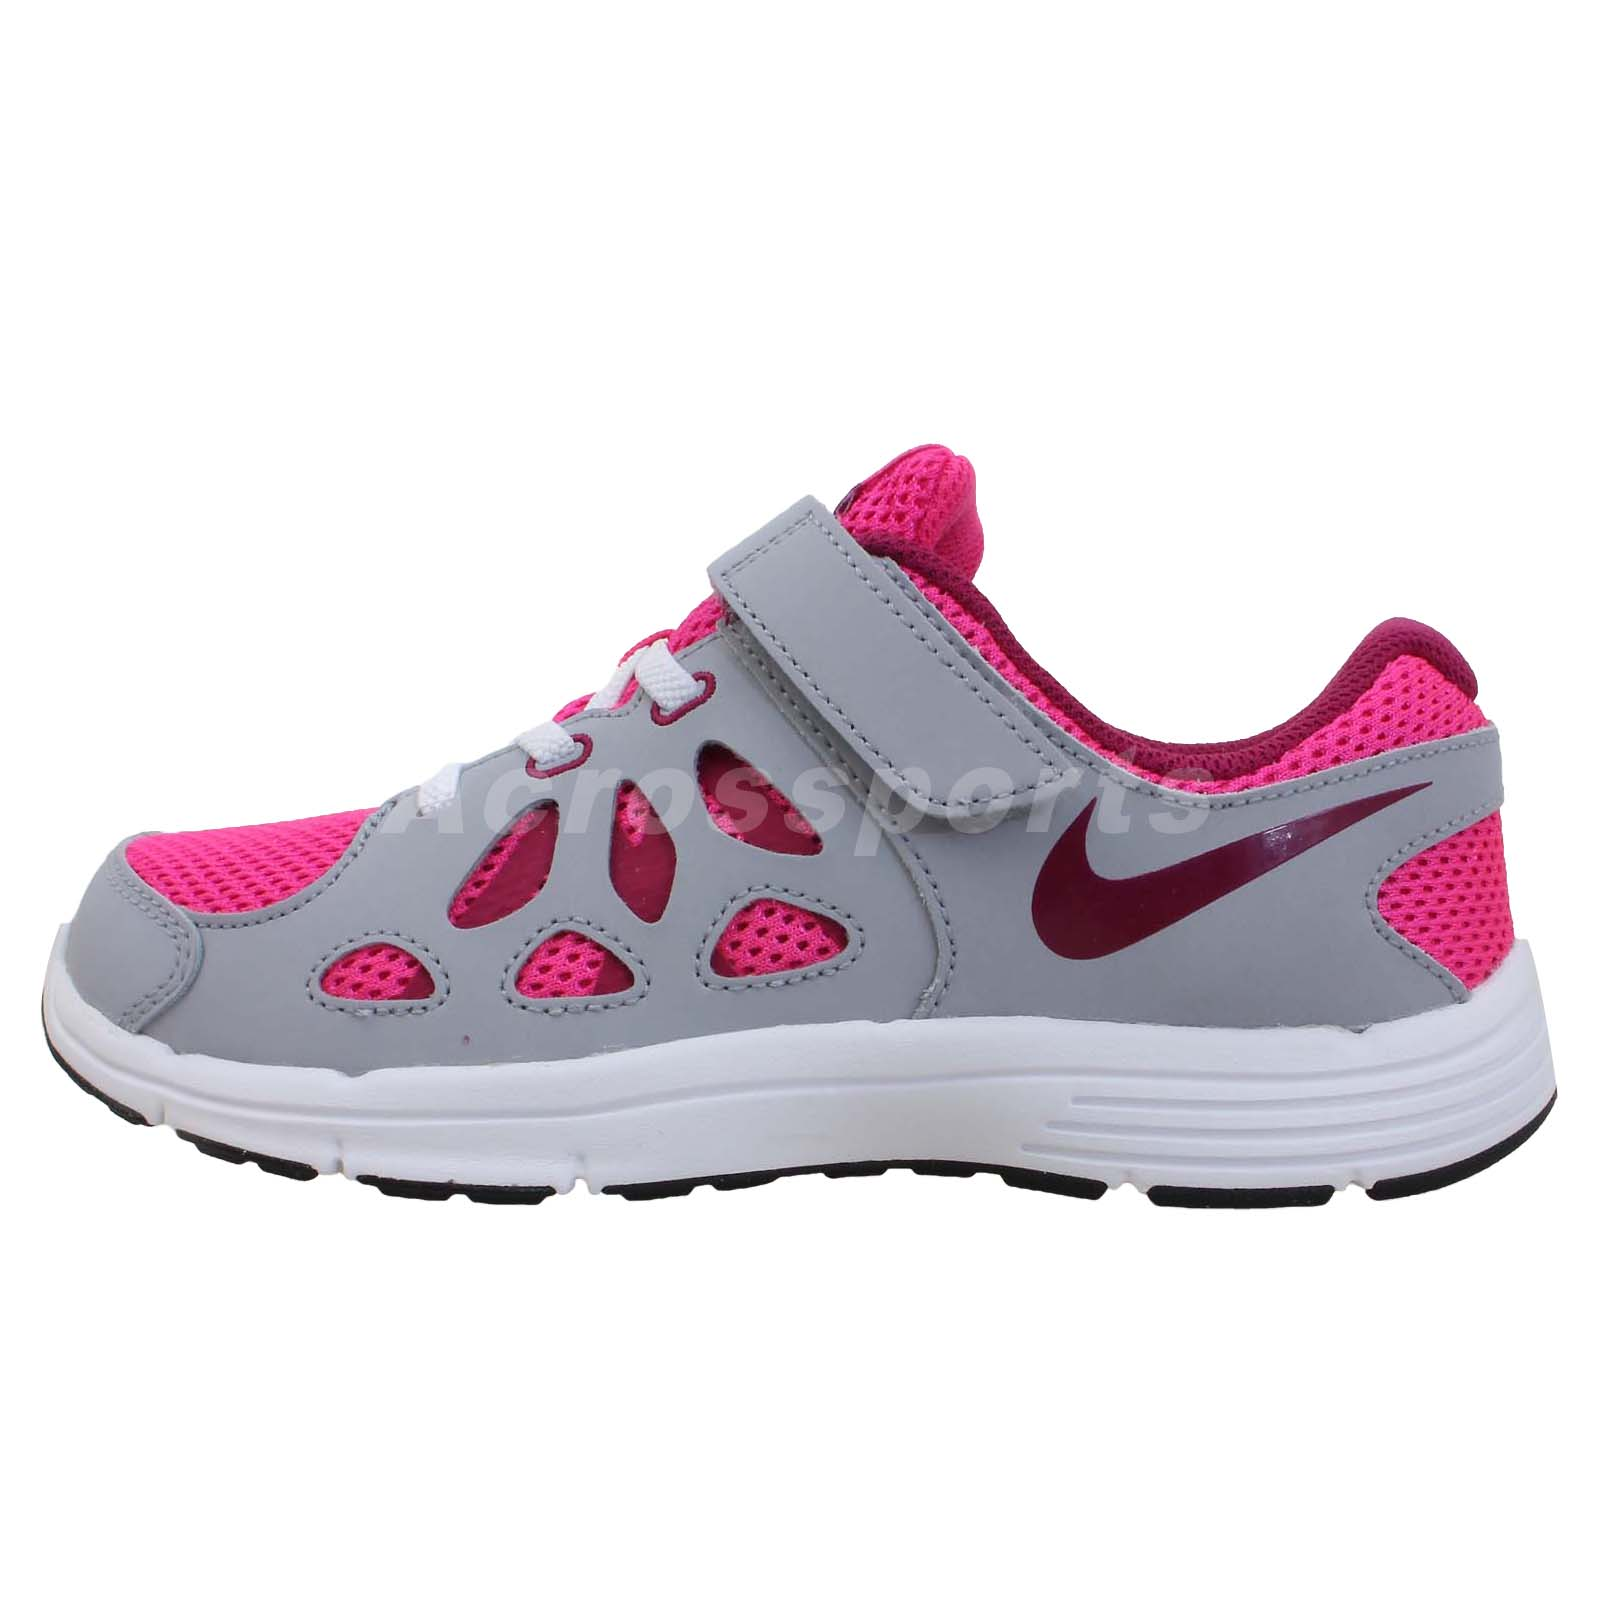 Nike Velcro Shoes For Adults